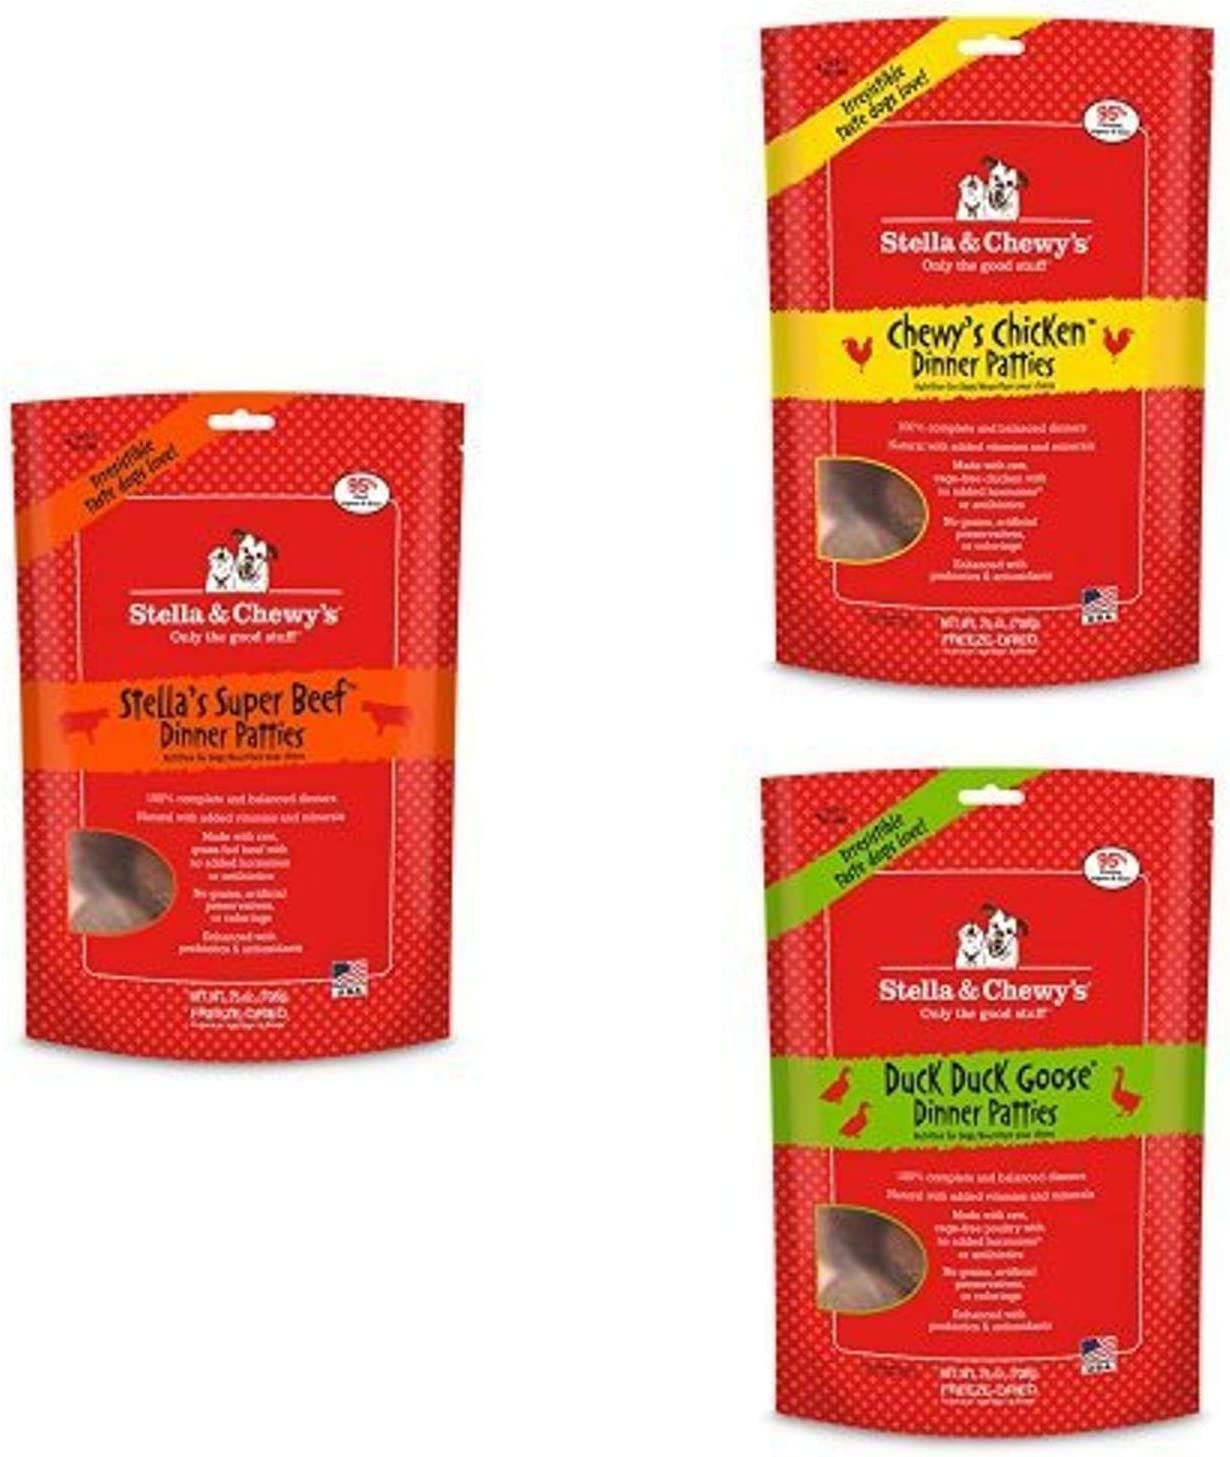 Stella & Chewy'S Freeze-Dried Raw Dinner Patties Dog Food Variety Pack Of 3 (Beef, Chicken And Duck), 25 Oz. Each